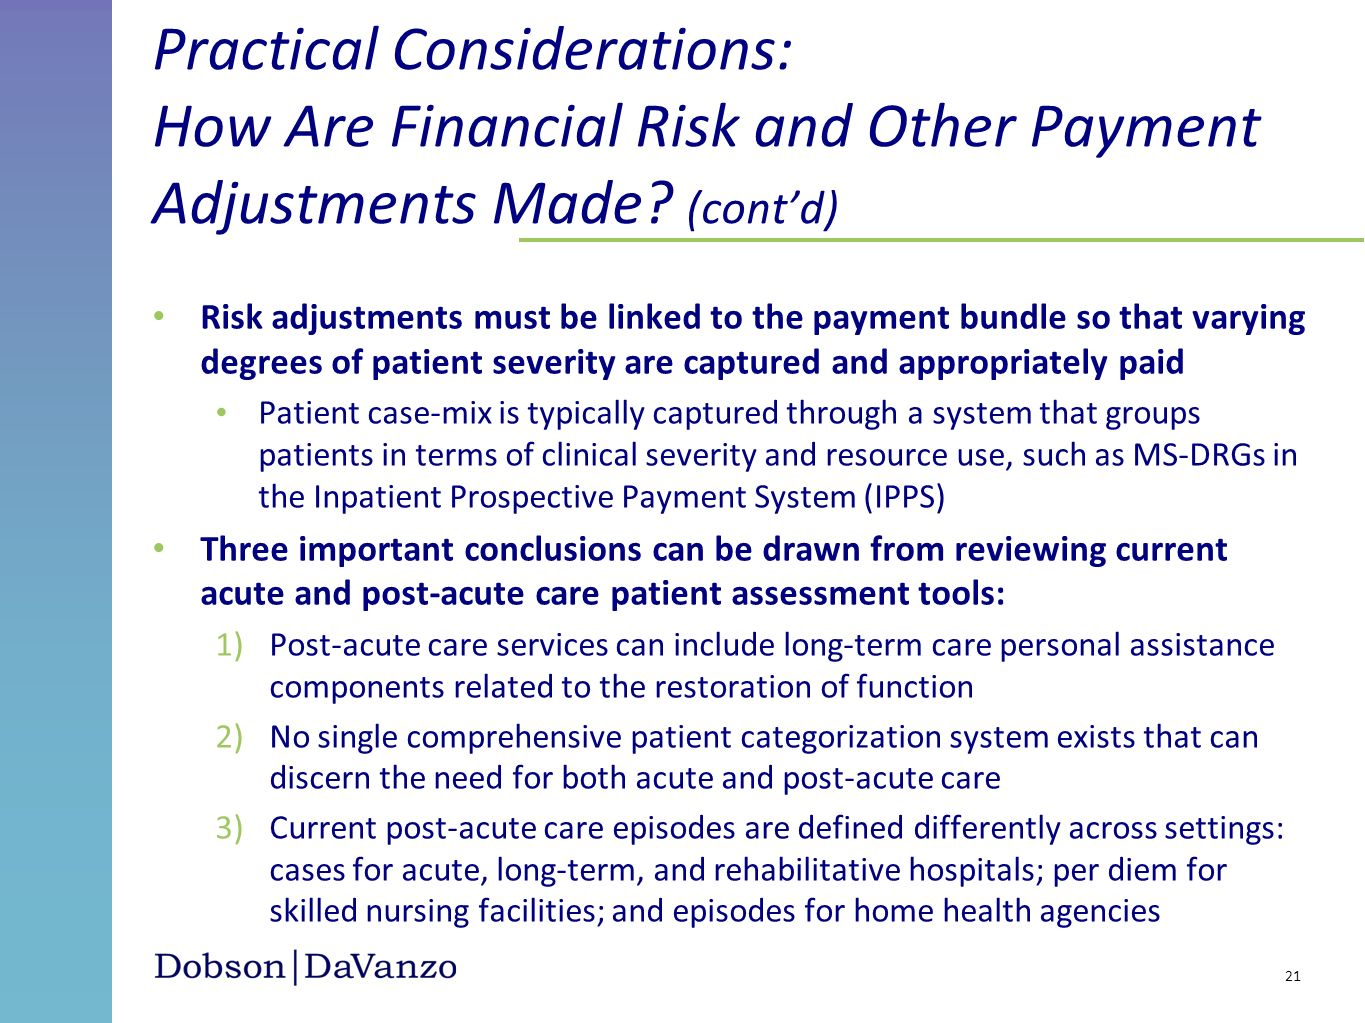 Practical Considerations: How Are Financial Risk and Other Payment Adjustments Made (cont'd)